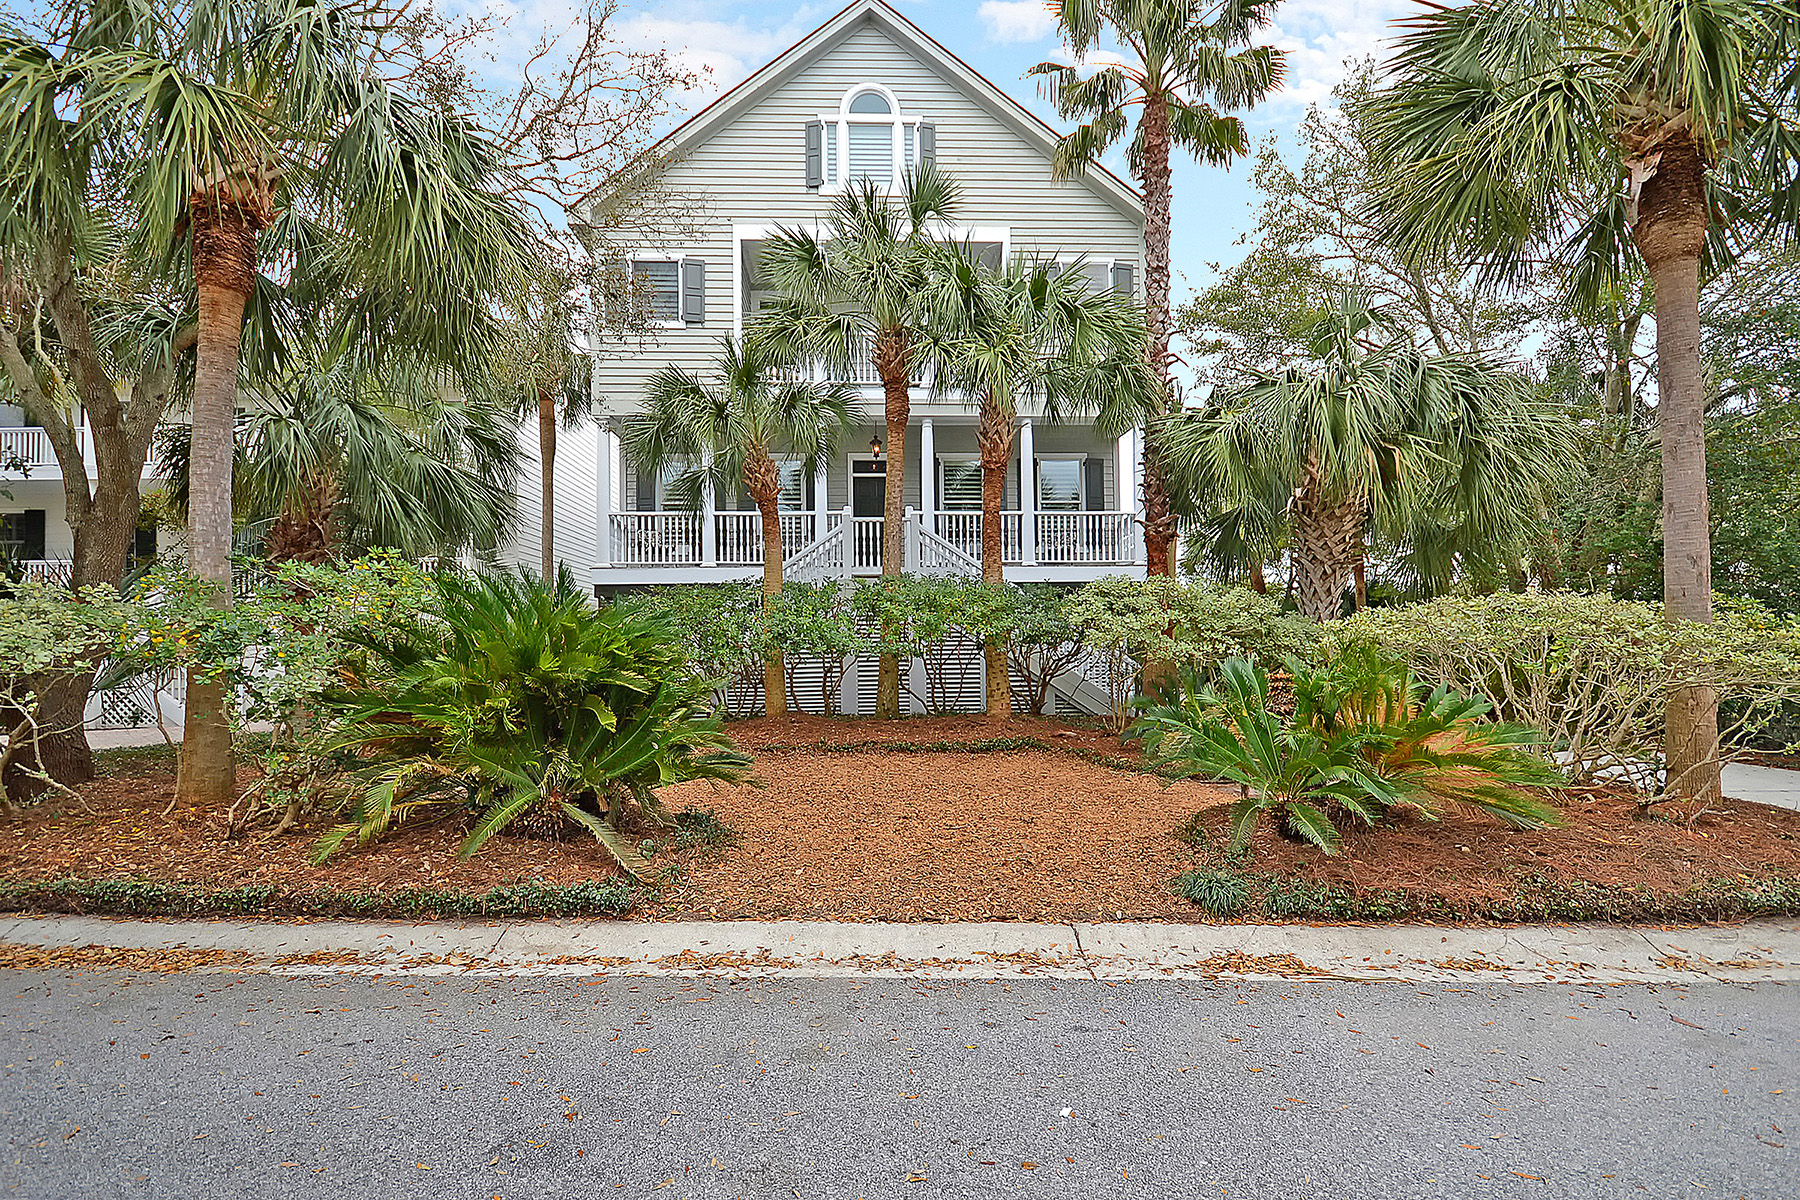 Single Family Home for Sale at 11 Morgan Place Drive Wild Dunes, Isle Of Palms, South Carolina, 29451 United States